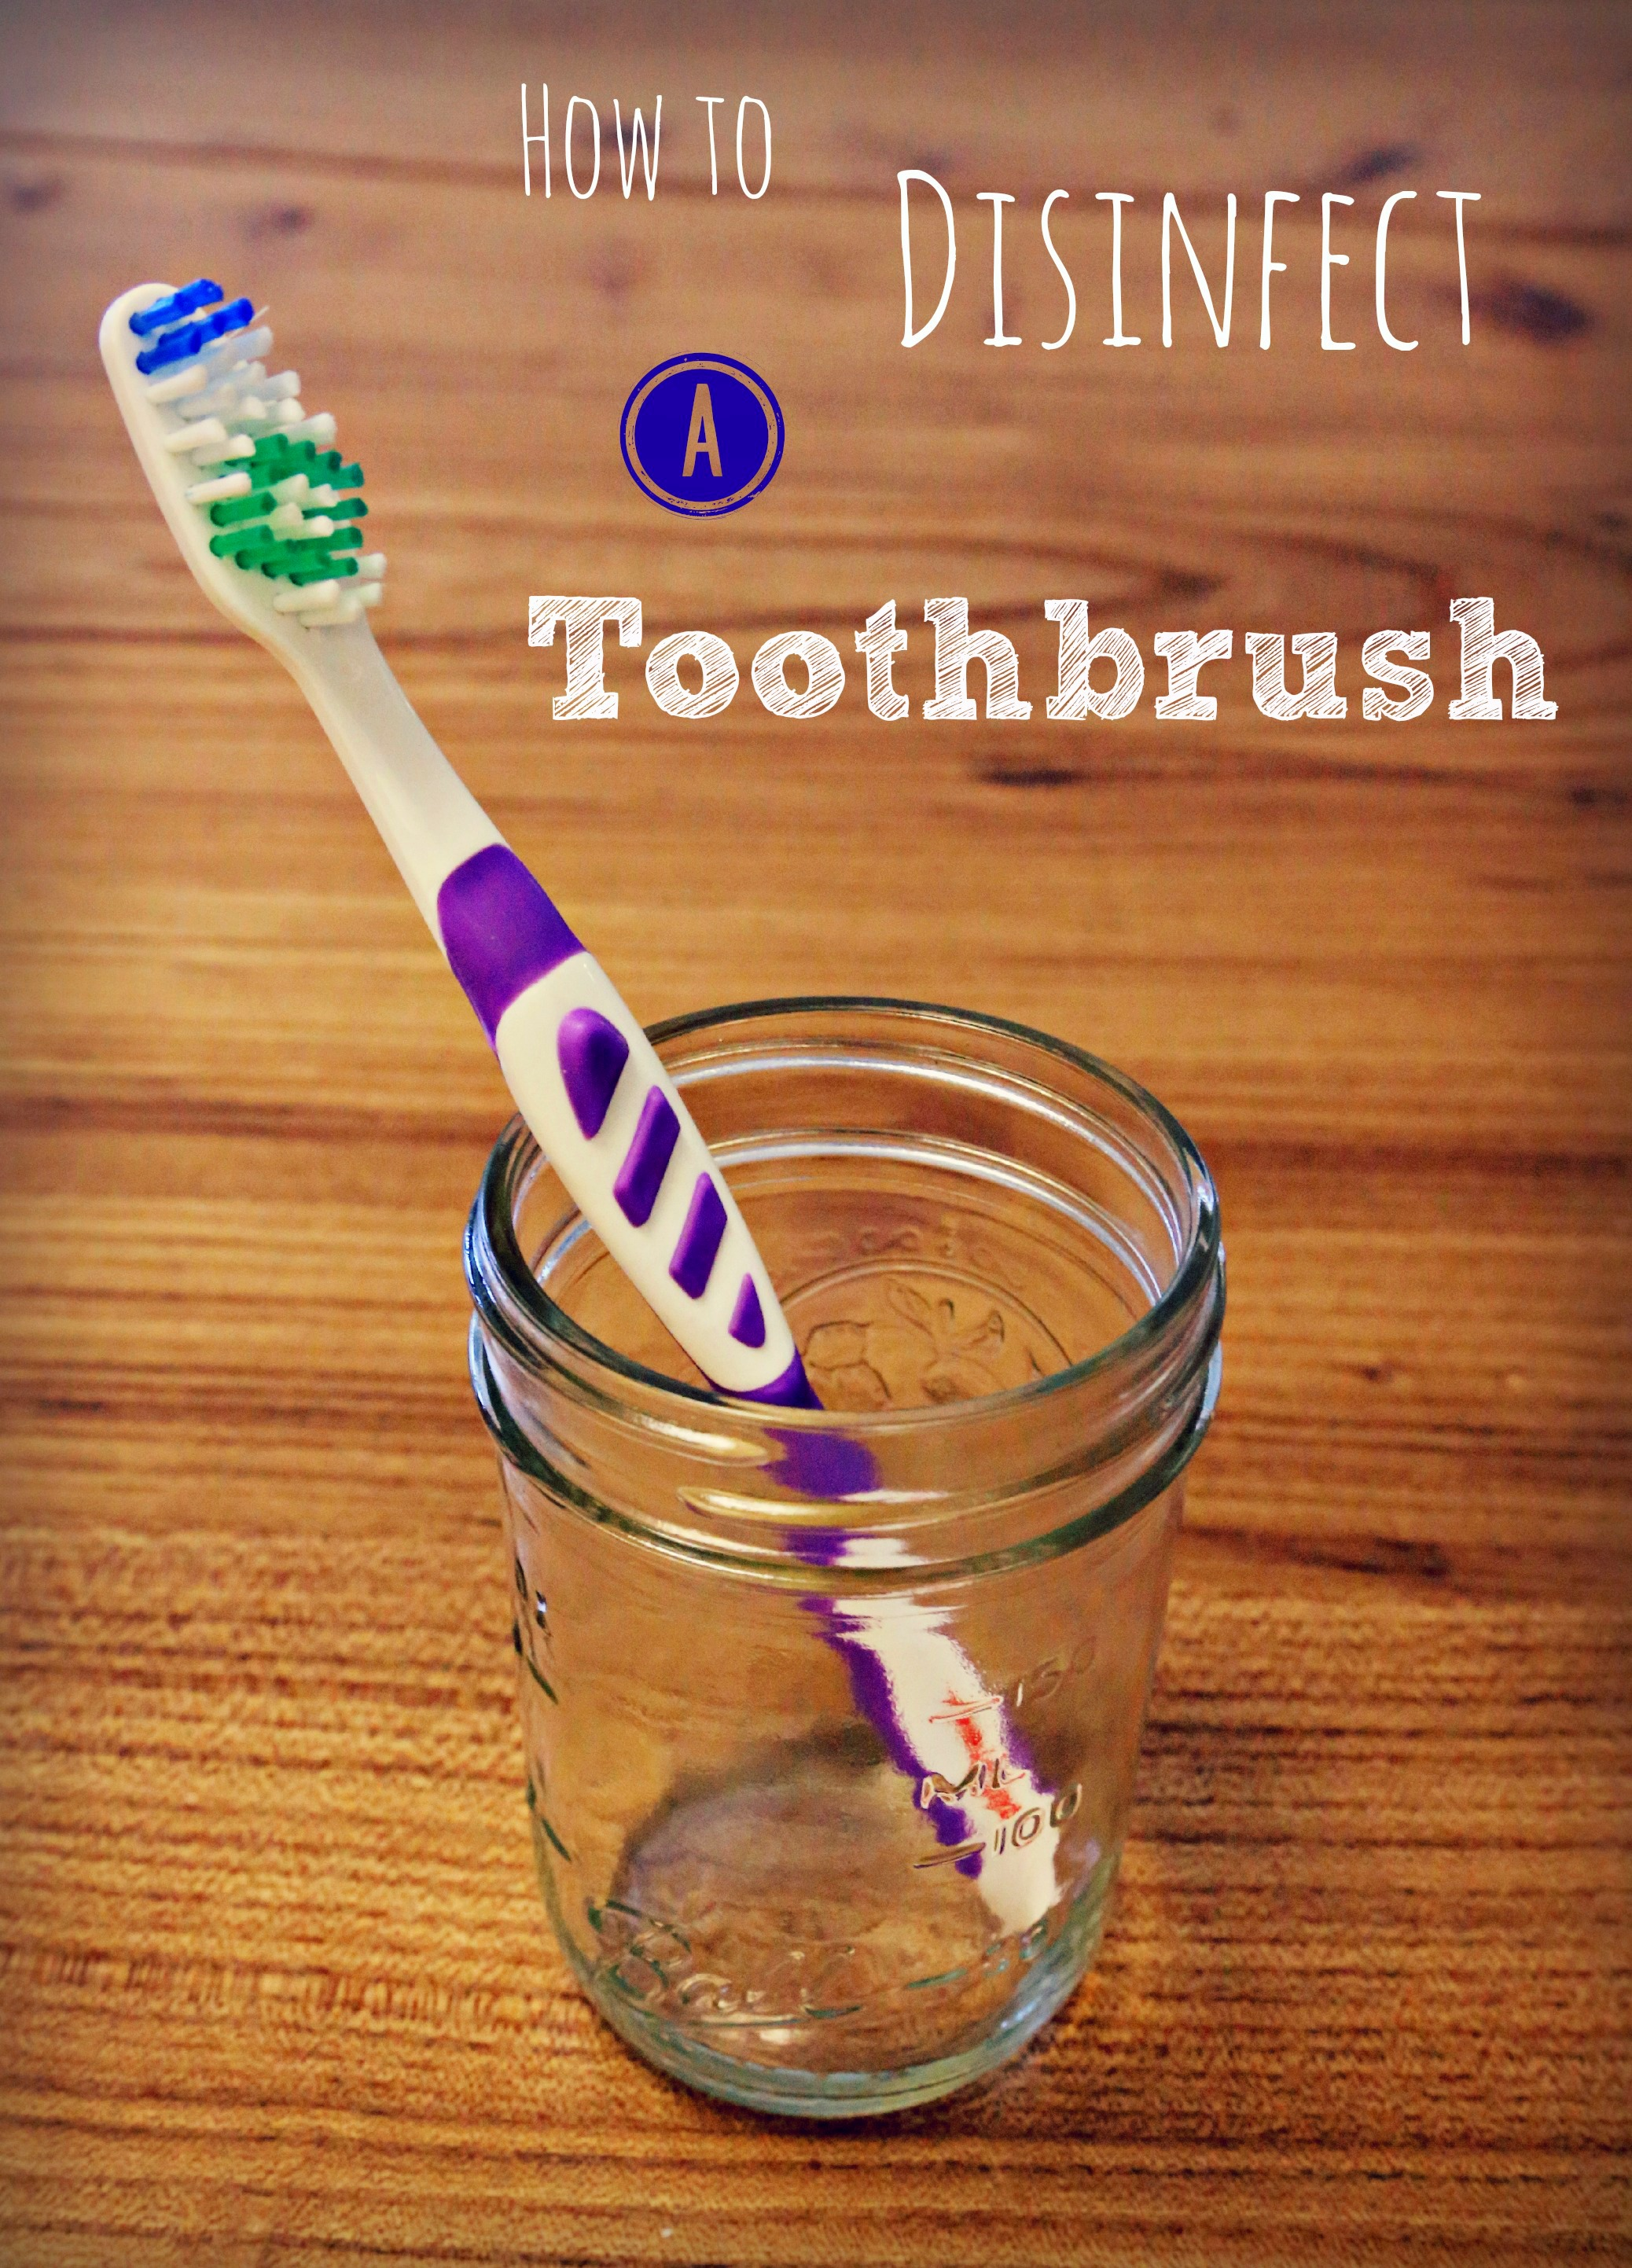 Disinfect A toothbrush